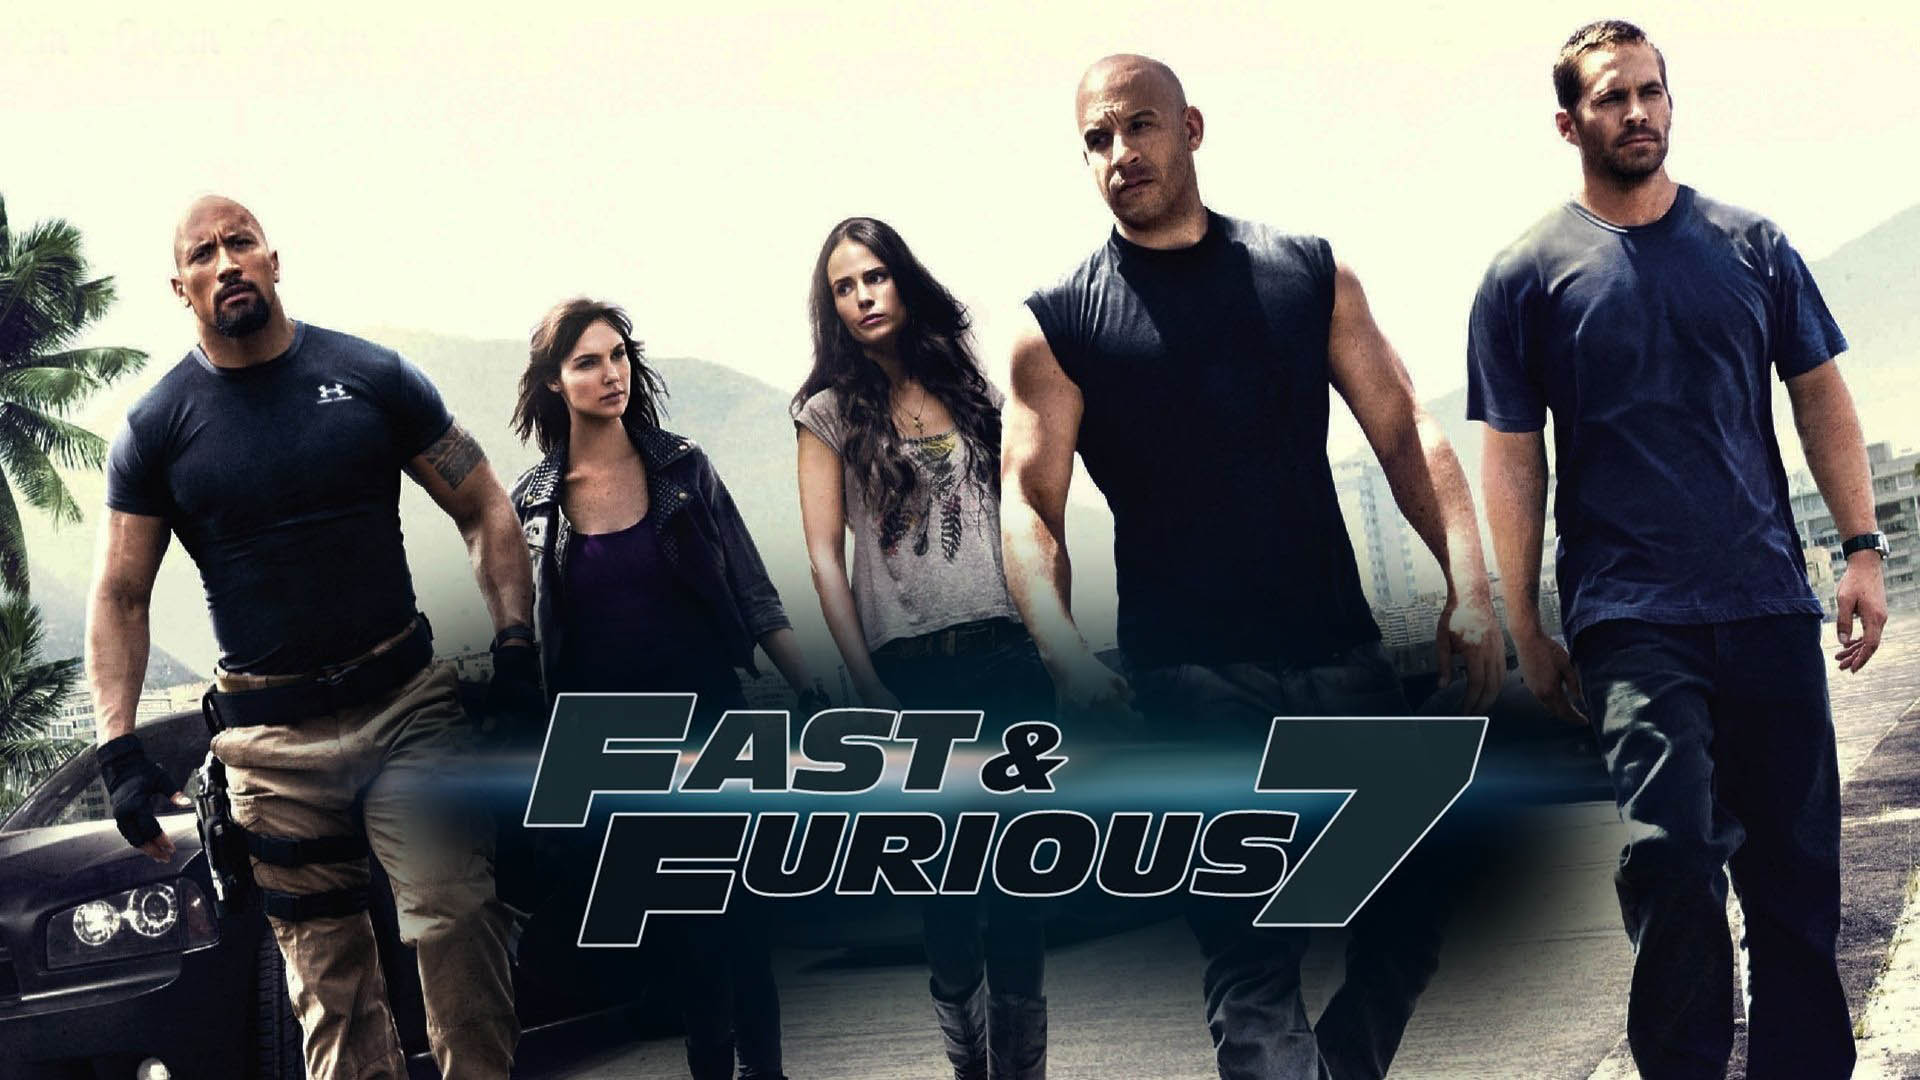 Fast And The Furious 7 Wallpaper: Fast And Furious 7 Wallpaper 5